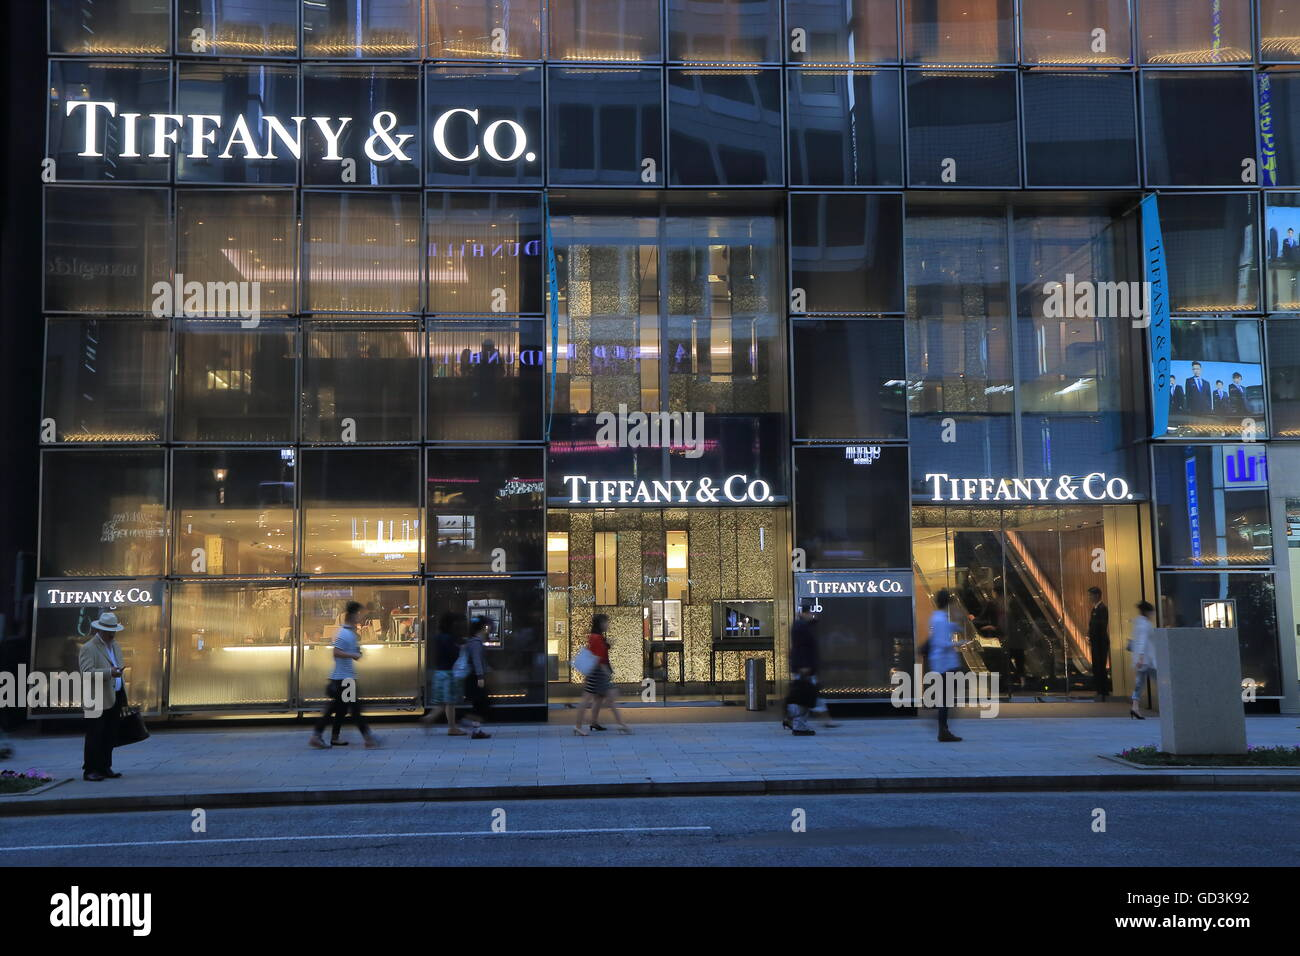 dd0bb9f72 Tiffany and Co shop in Ginza Tokyo Japan Stock Photo: 111333742 - Alamy